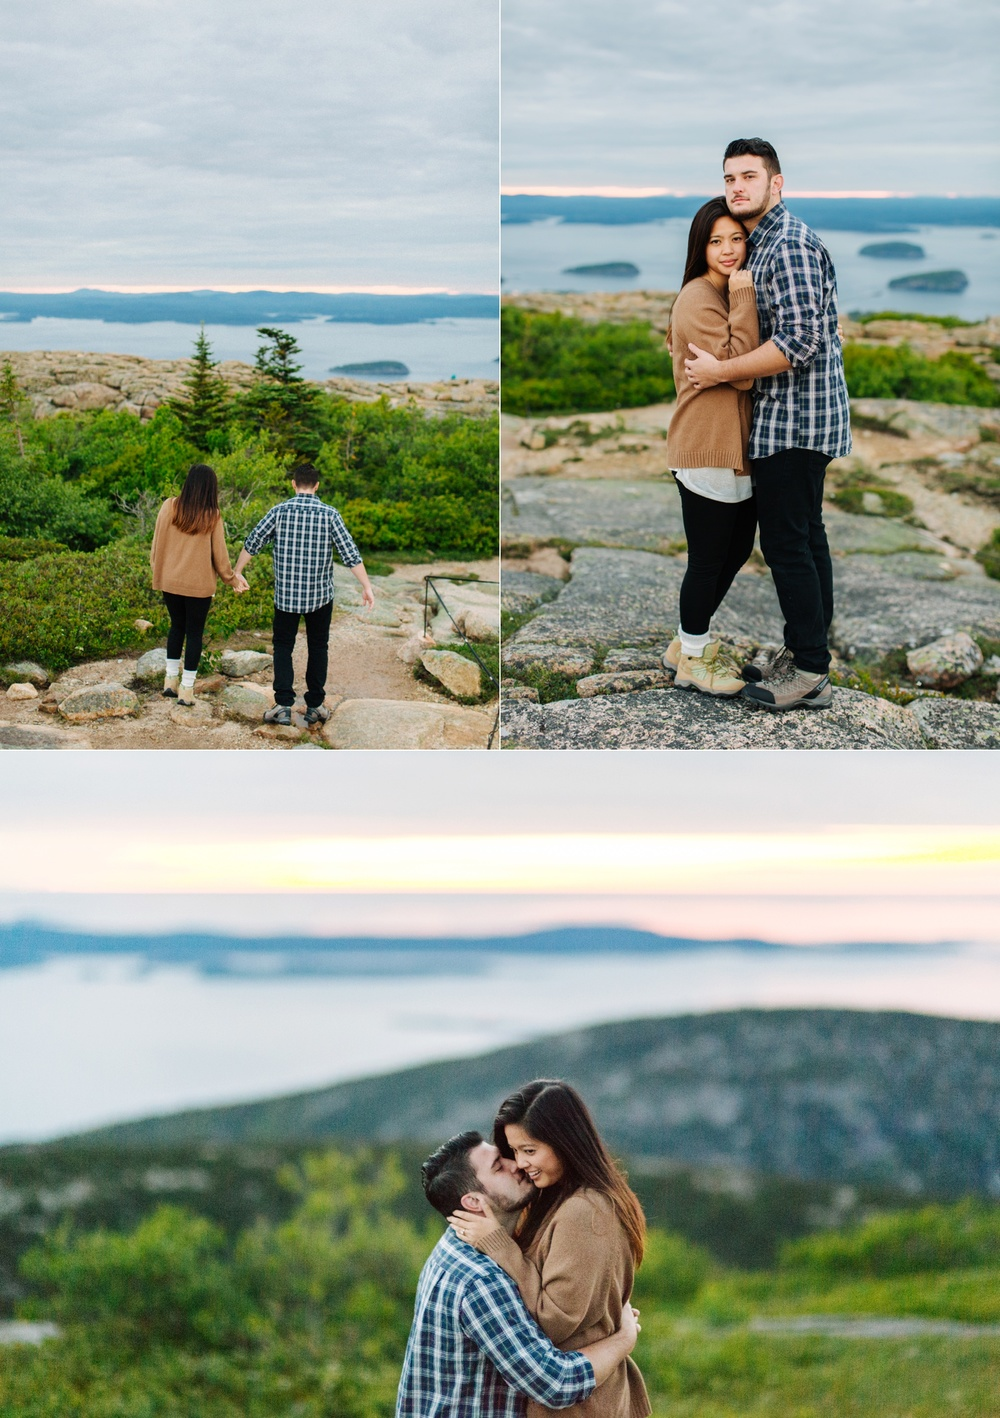 jake and jill acacdia national park engagement session cadillac mountain engagement session jordan pond engagement session maine engagement session jake and katie_0003